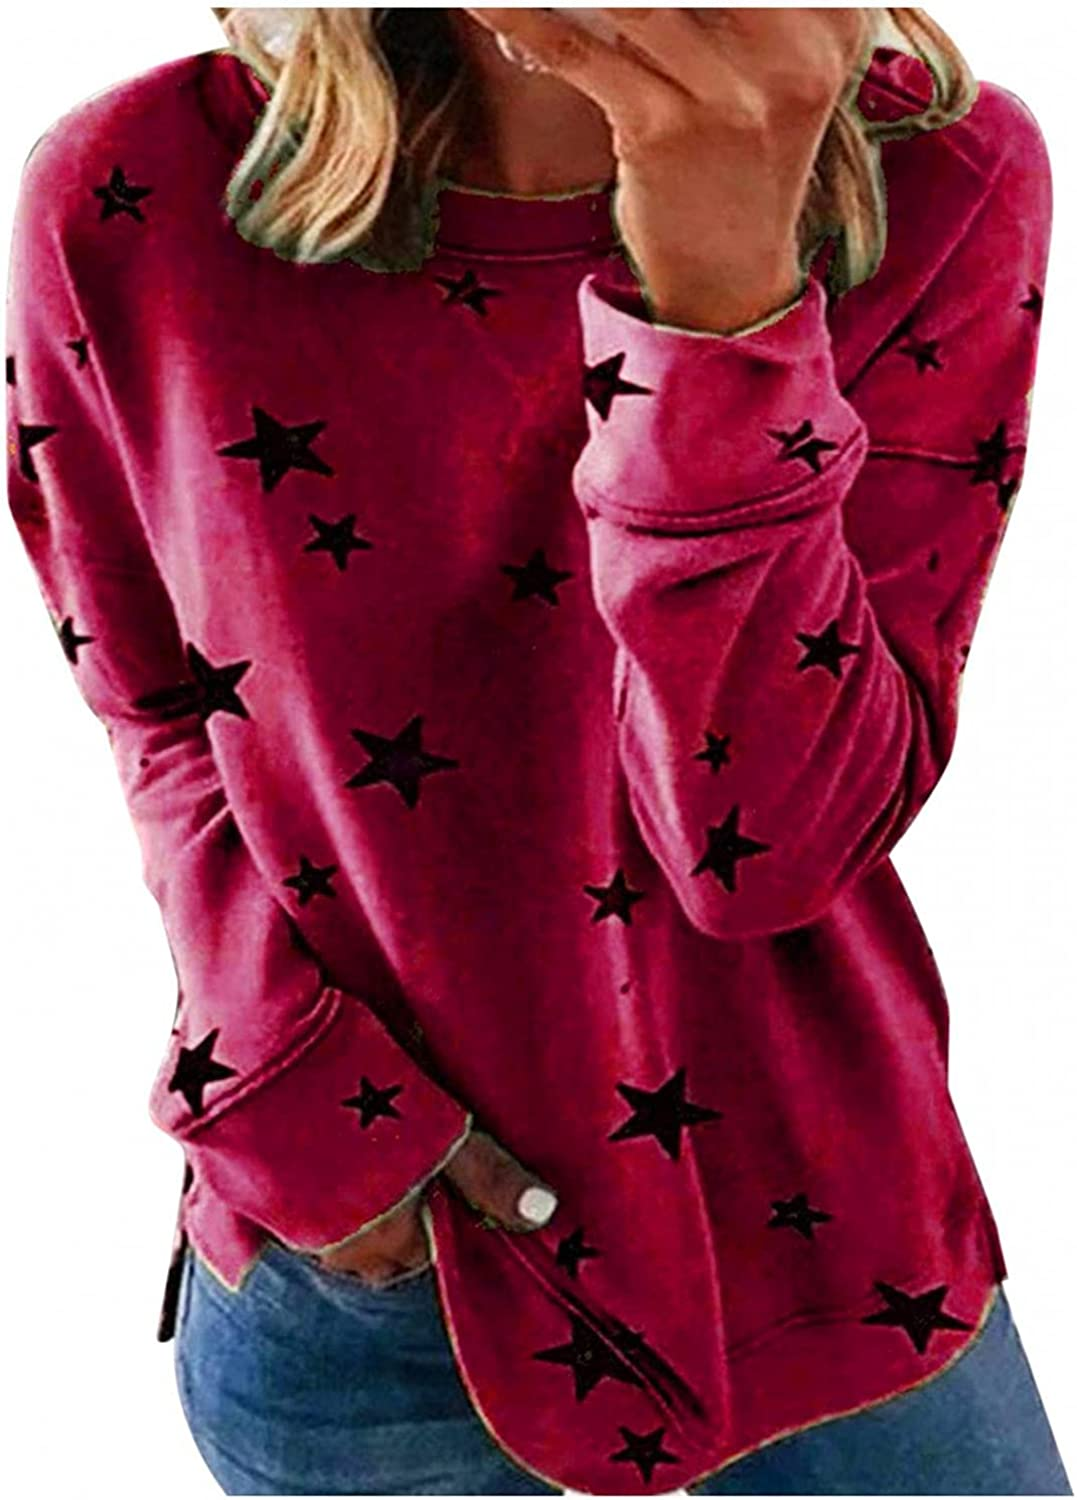 COMVALUE Sweatshirts for Women,Hoodies for Women Casual Fashion Strar Print Long Sleeve Pullover Tops